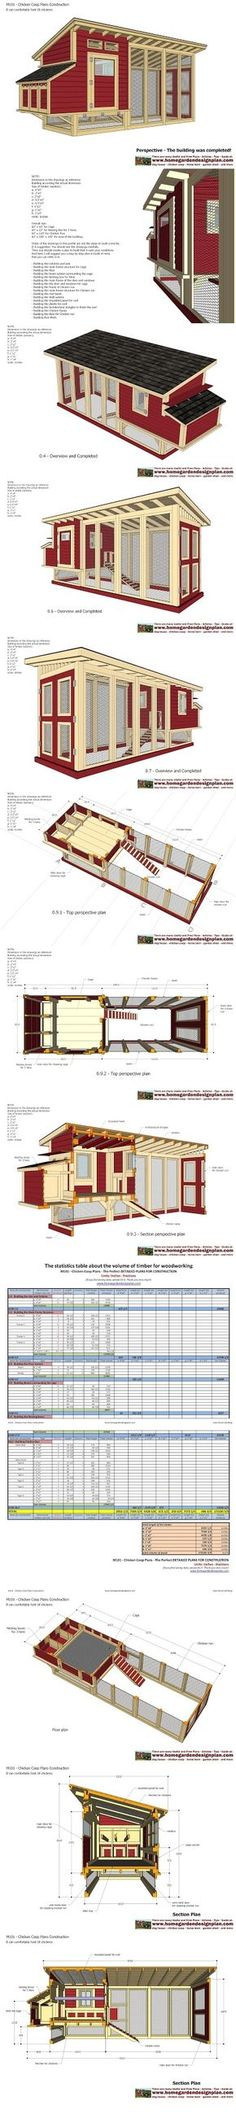 cosy designs for chicken houses. home garden plans  M101 Chicken Coop Plans Construction Design How The Backyard 5 Mistakes That Will Cost You